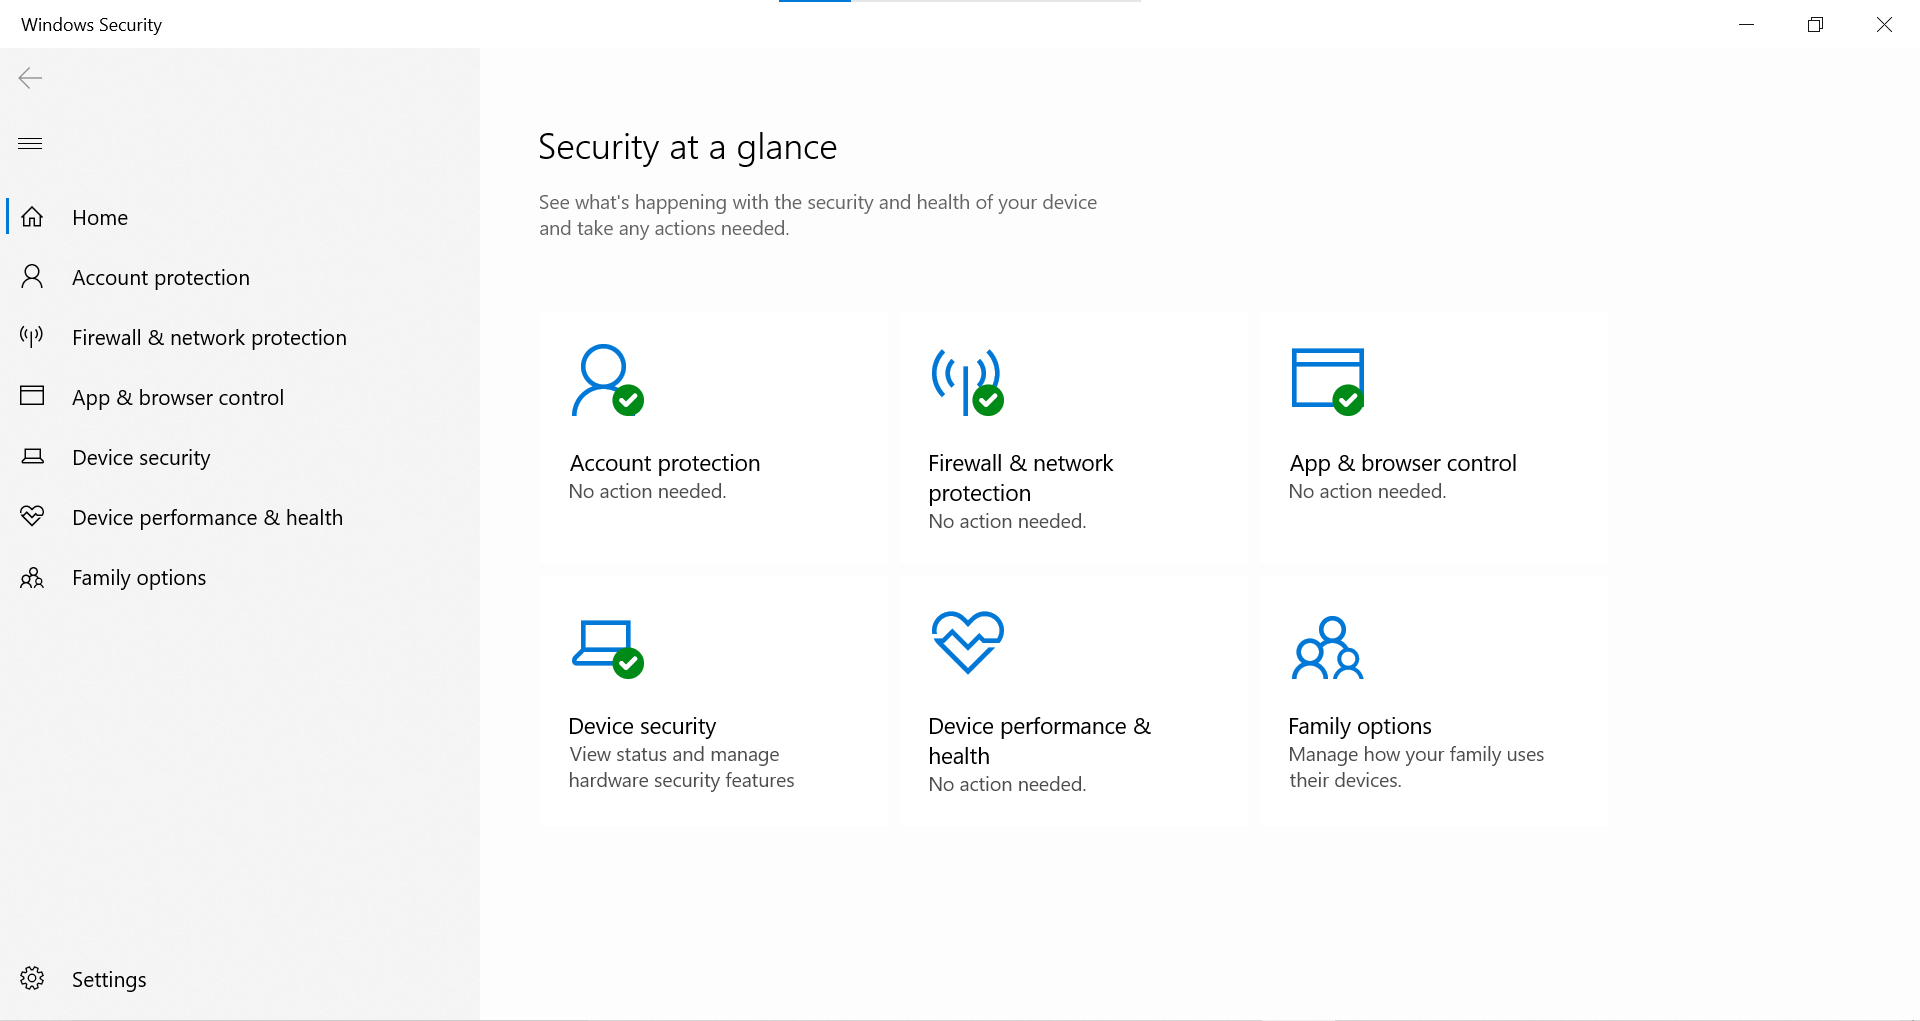 Virus and Threat protection not appearing when going to Microsoft Security feb917ab-6e16-47e6-9639-e55a509433be?upload=true.png